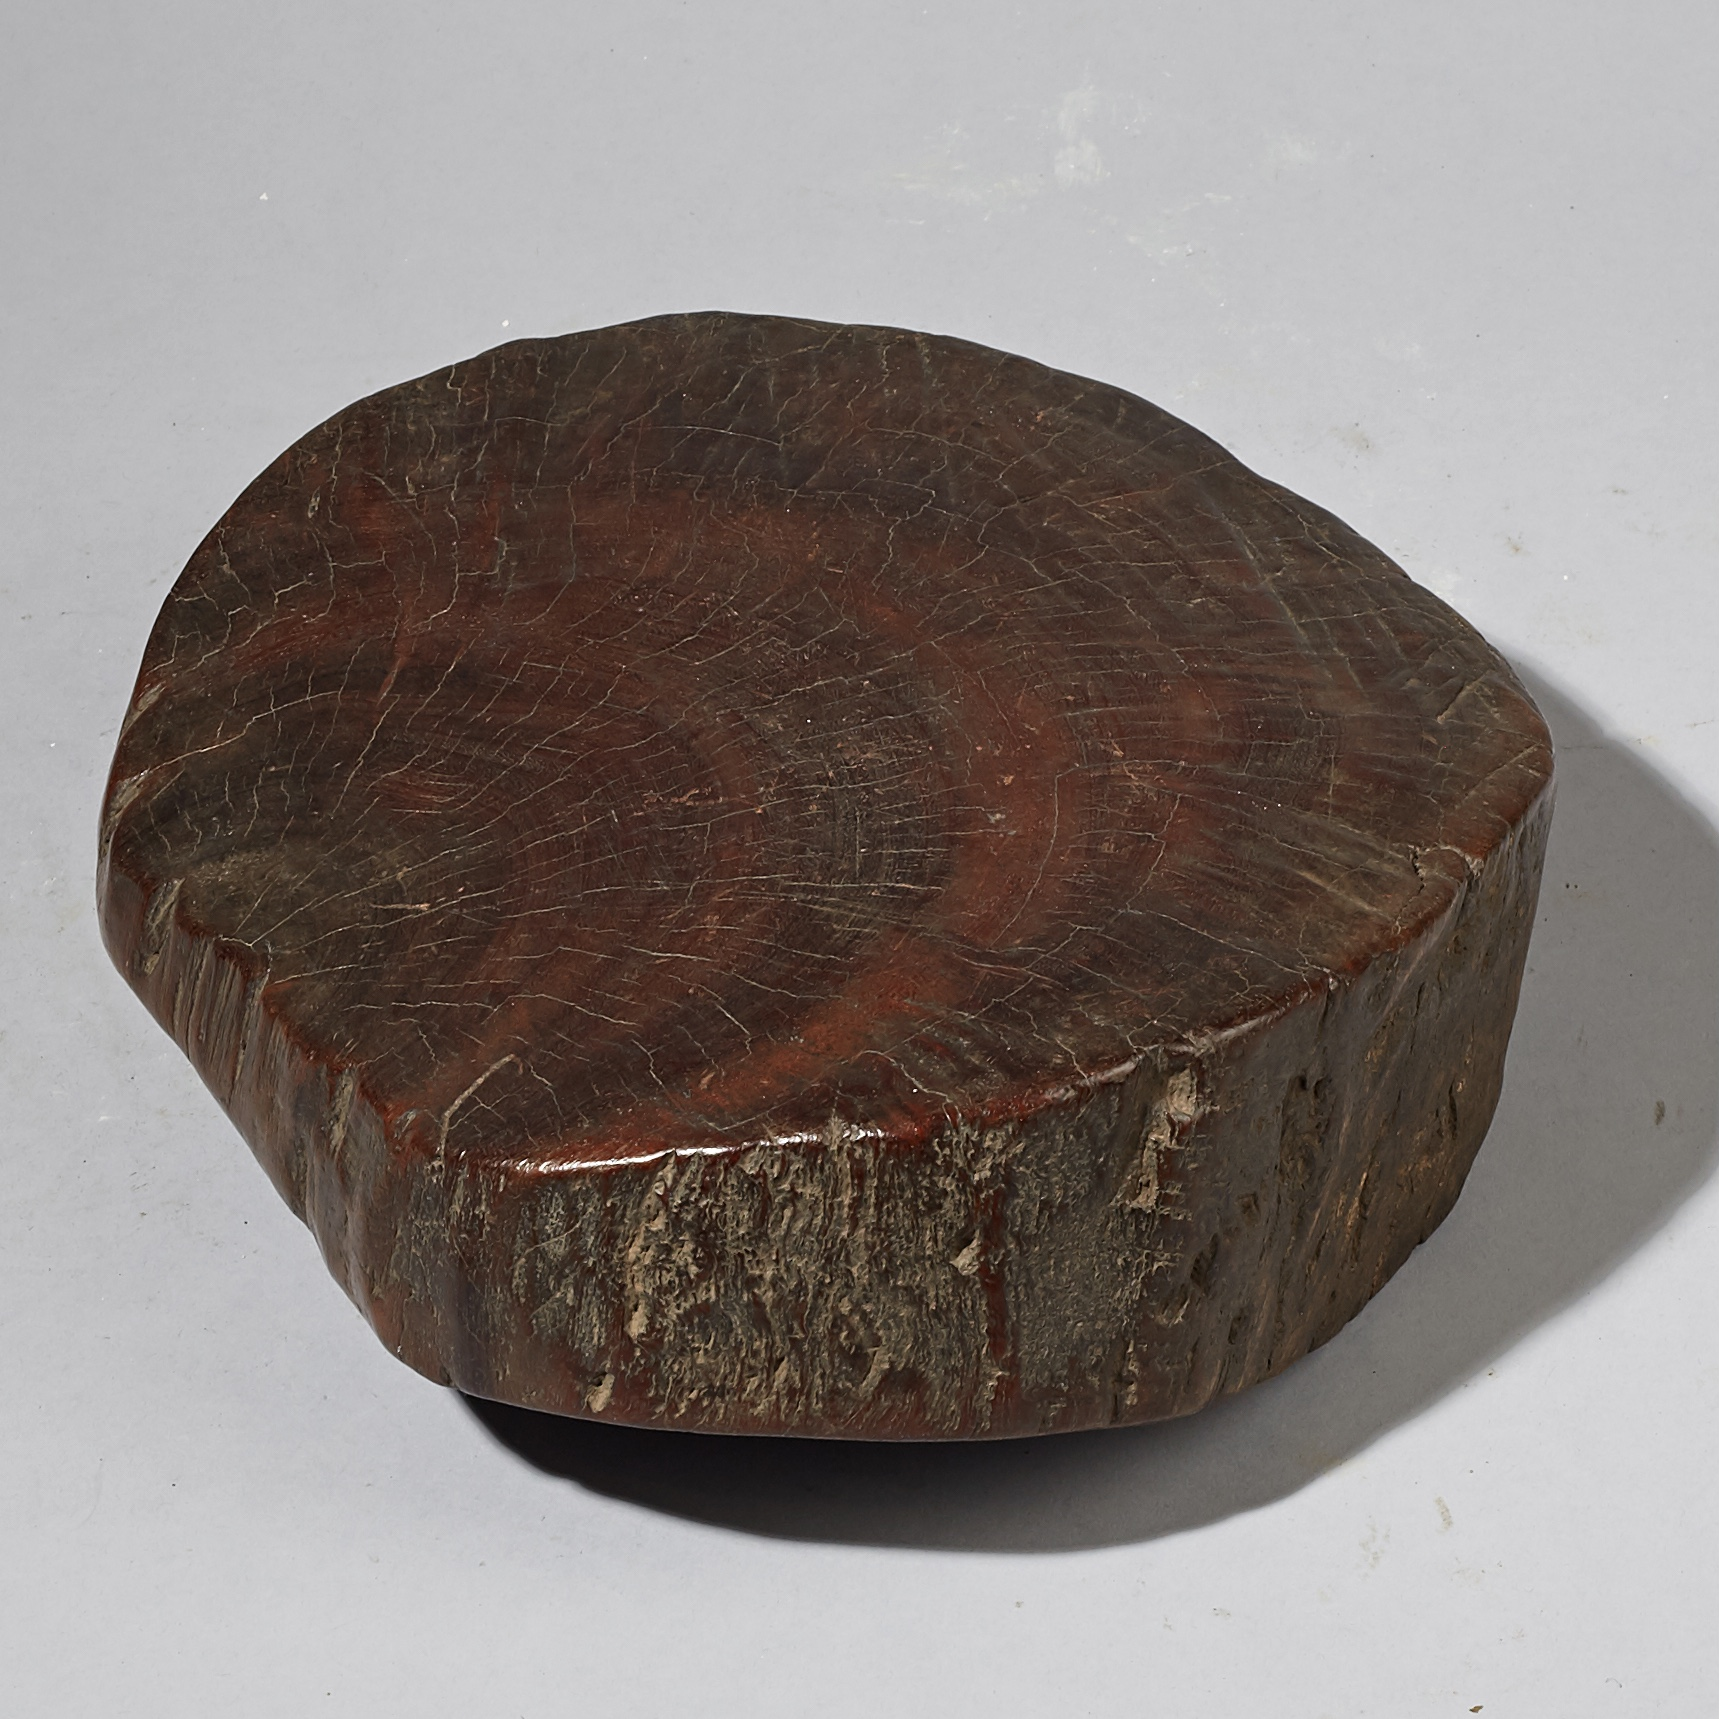 AN ORGANIC SIMPLE WOODEN STOOL OR STAND FROM ETHIOPIA  ( No 2977 )